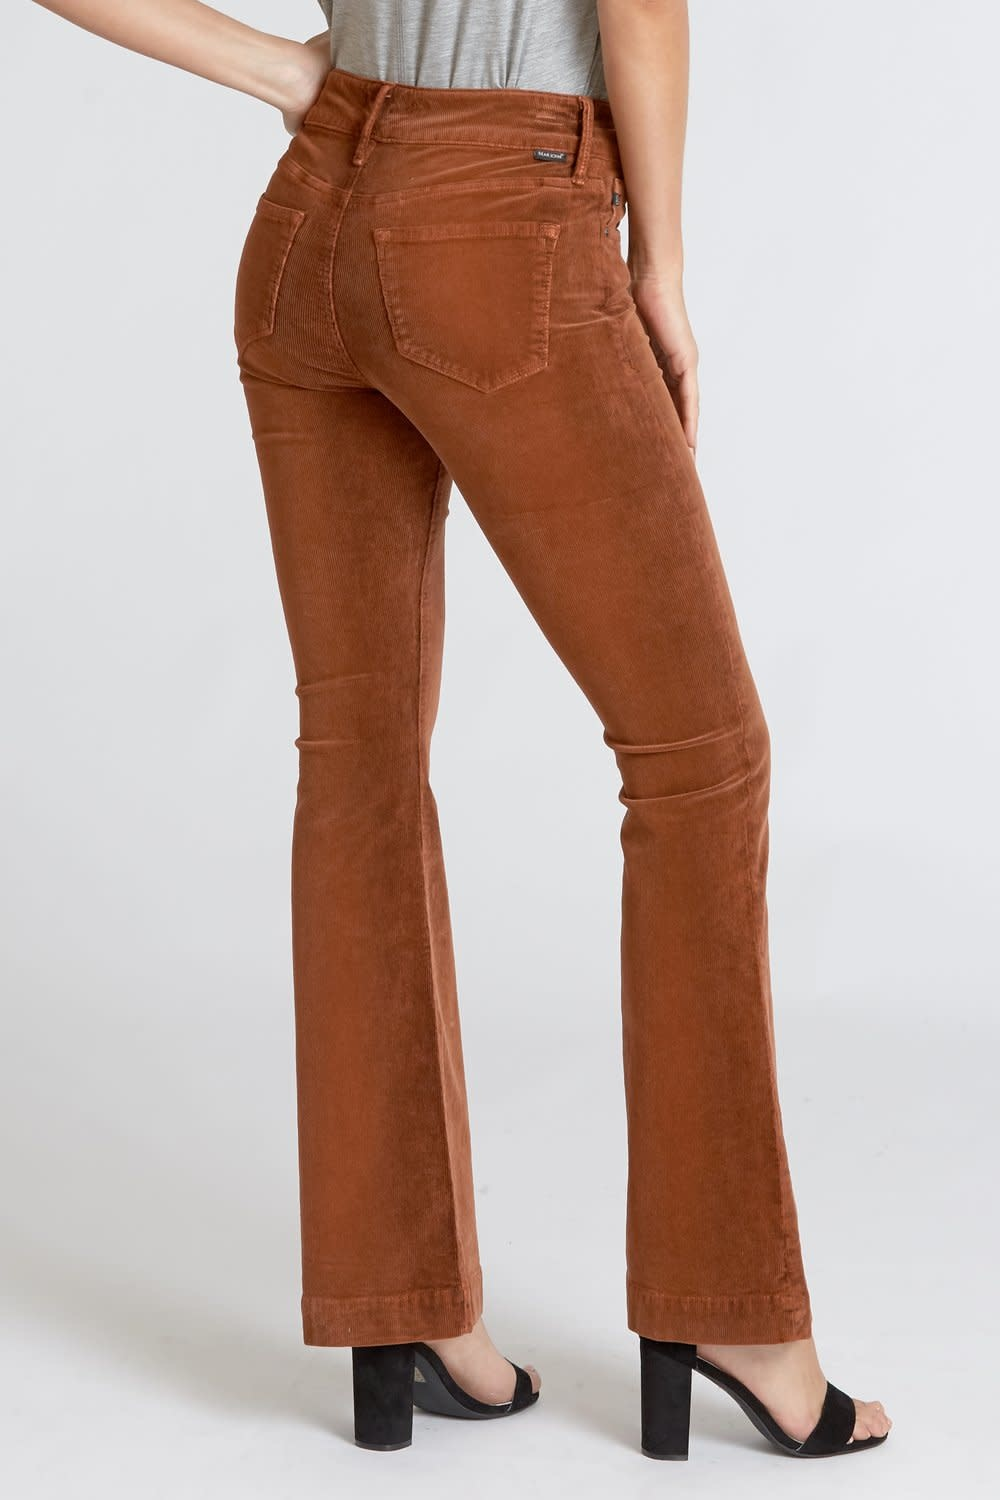 Tuscan Spice Corduroy Flare